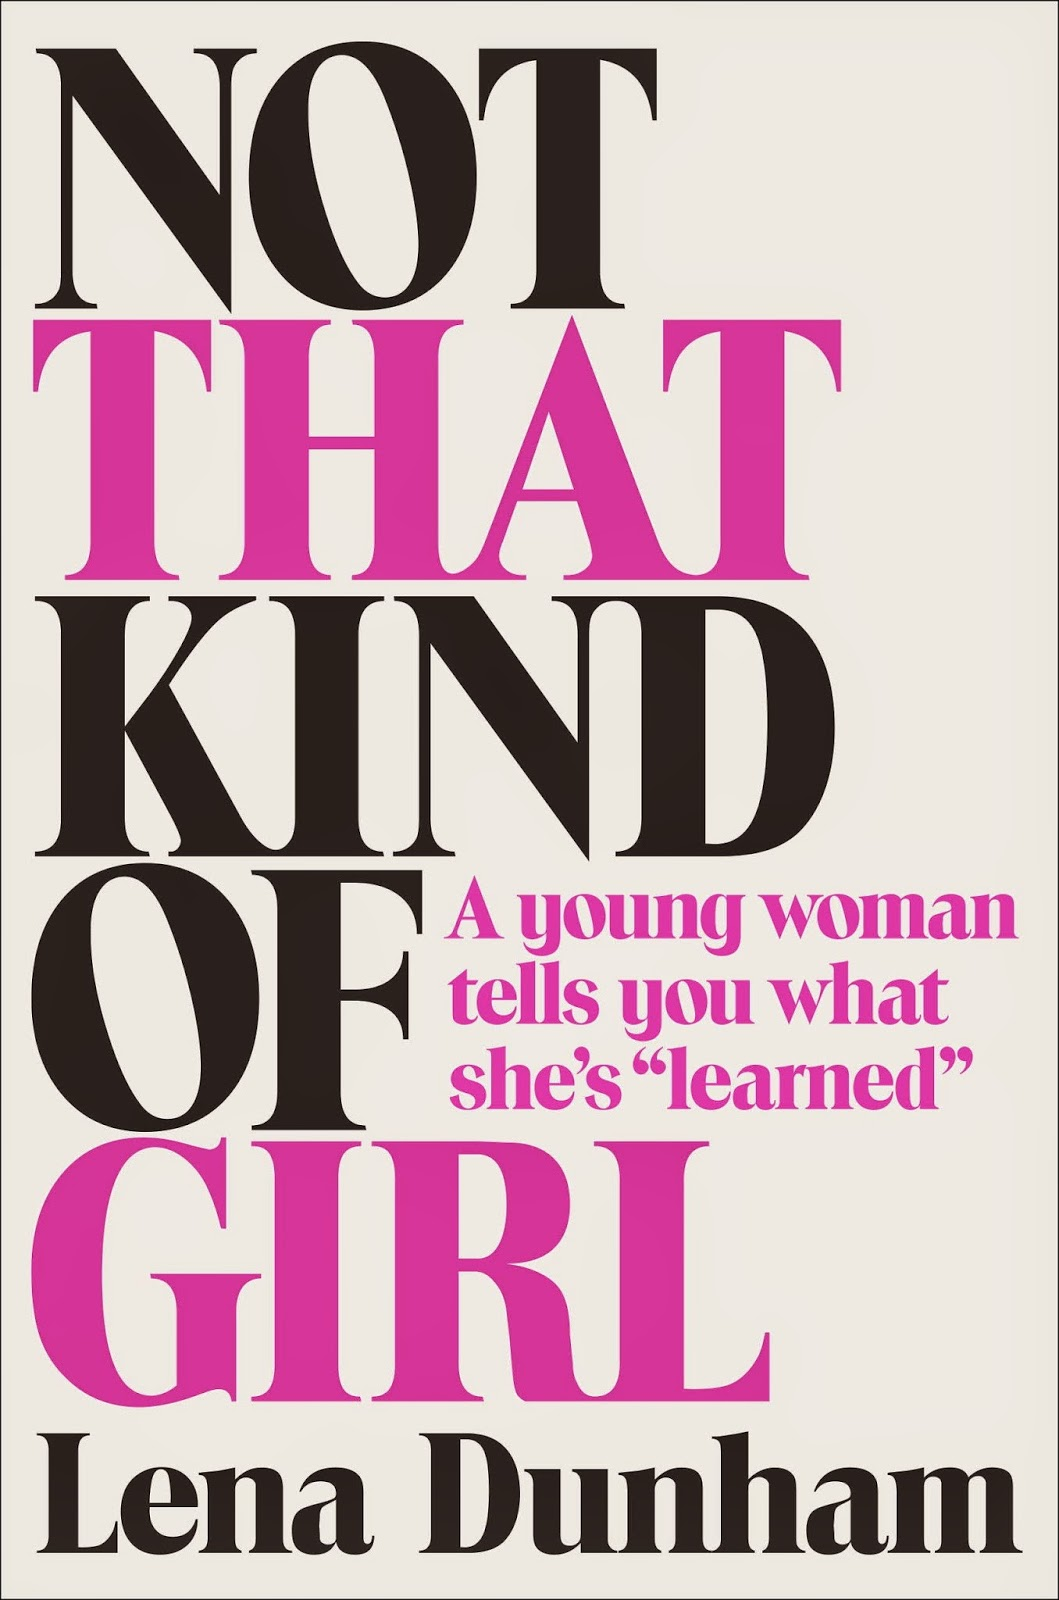 http://www.fischerverlage.de/buch/not_that_kind_of_girl/9783100153562